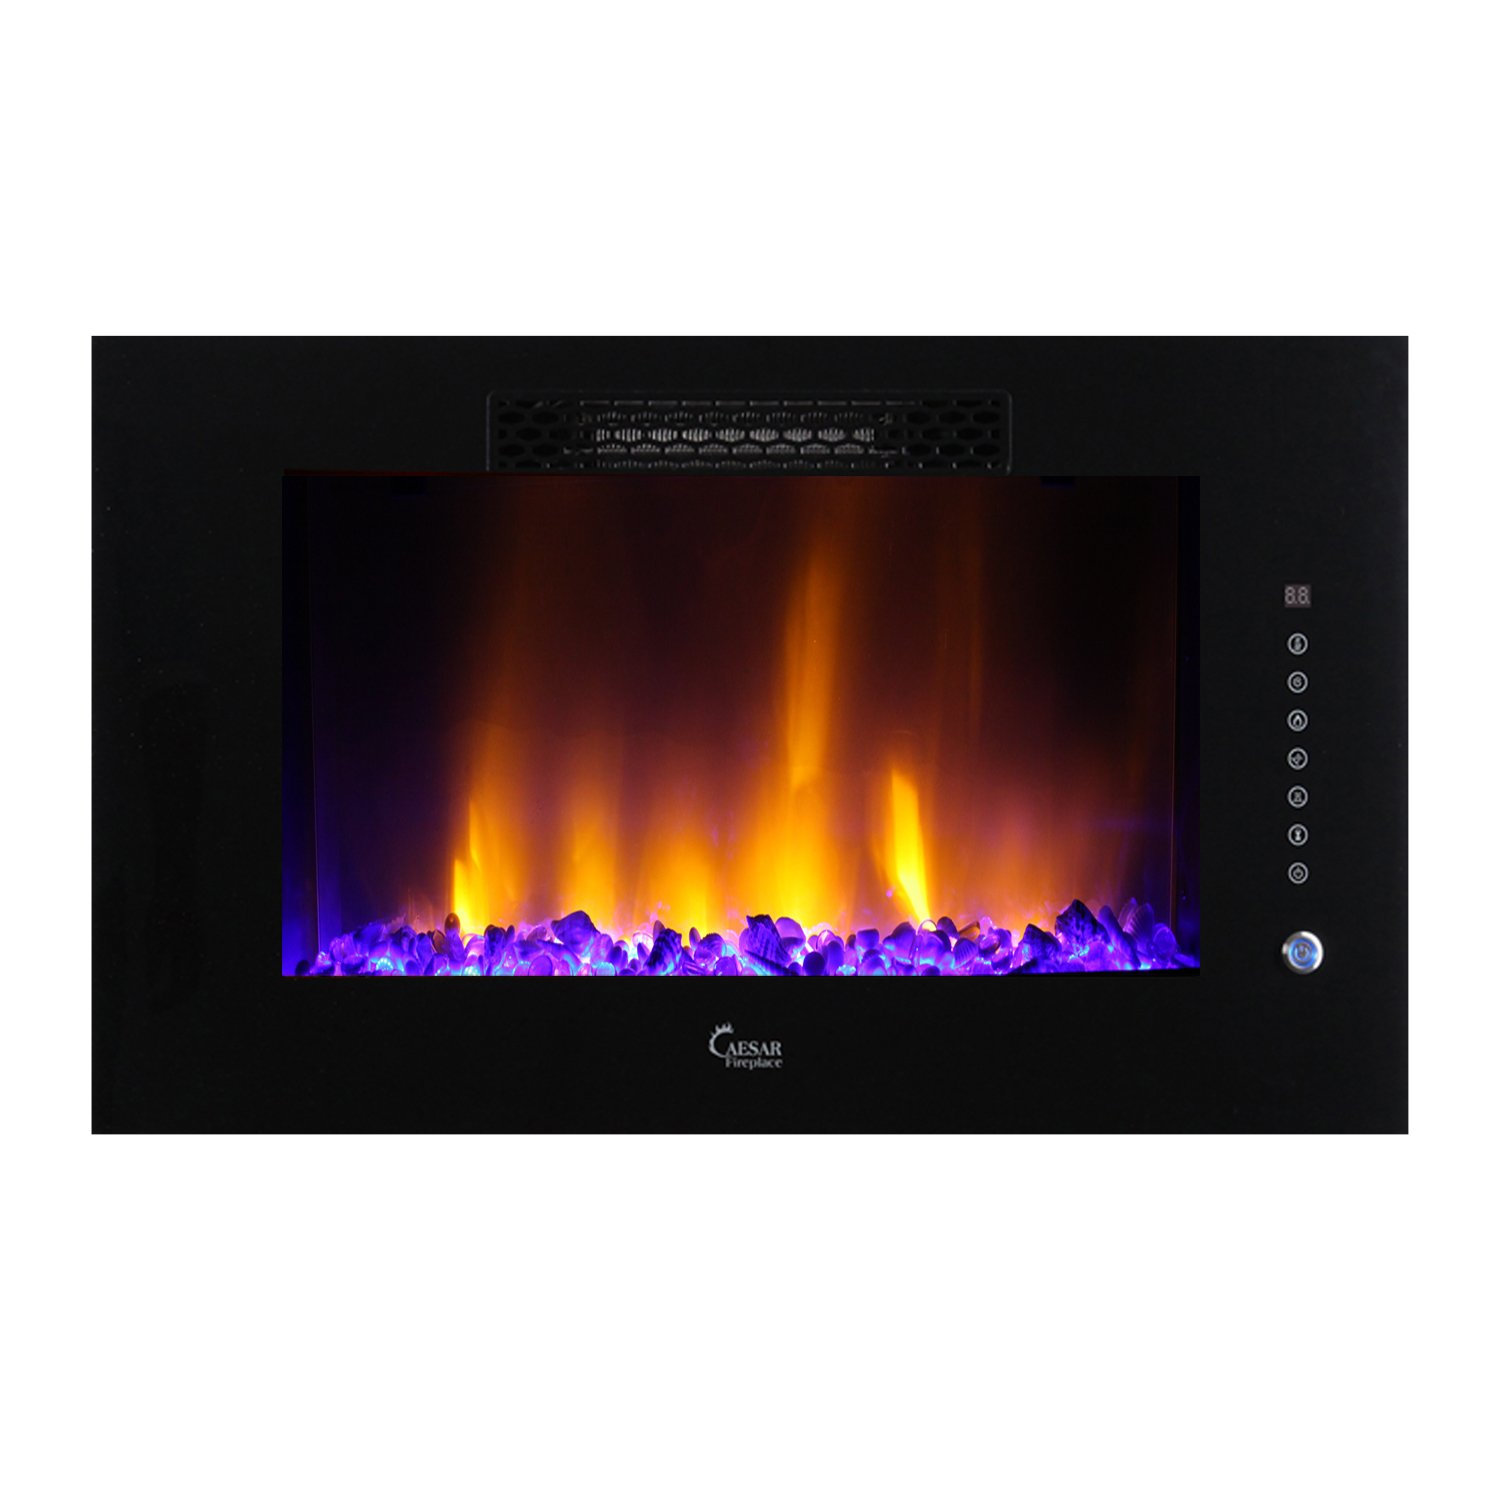 dinatale electric reviews home fireplace ca real improvement mounted wayfair flame pdp wall